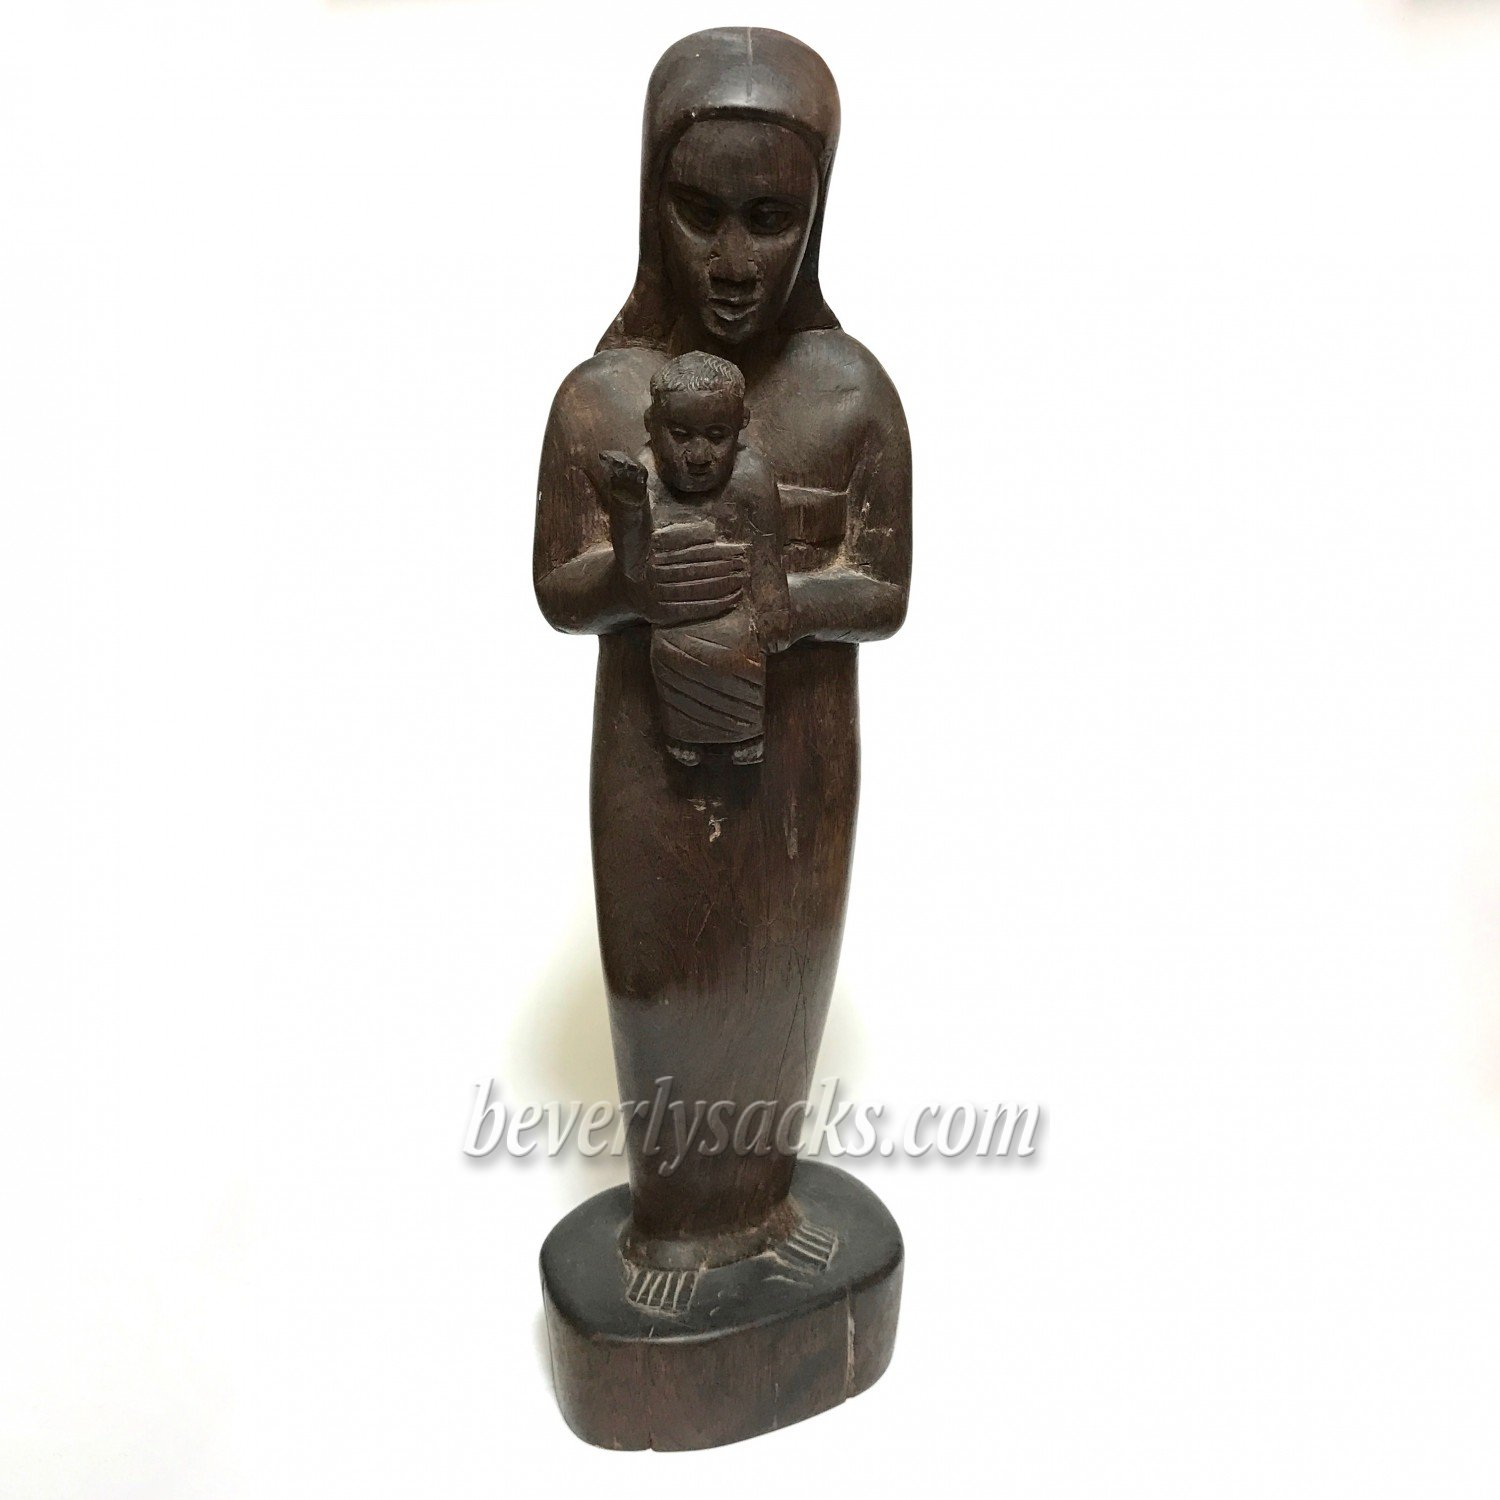 Madonna and child hand carved wood sculpture beverly sacks